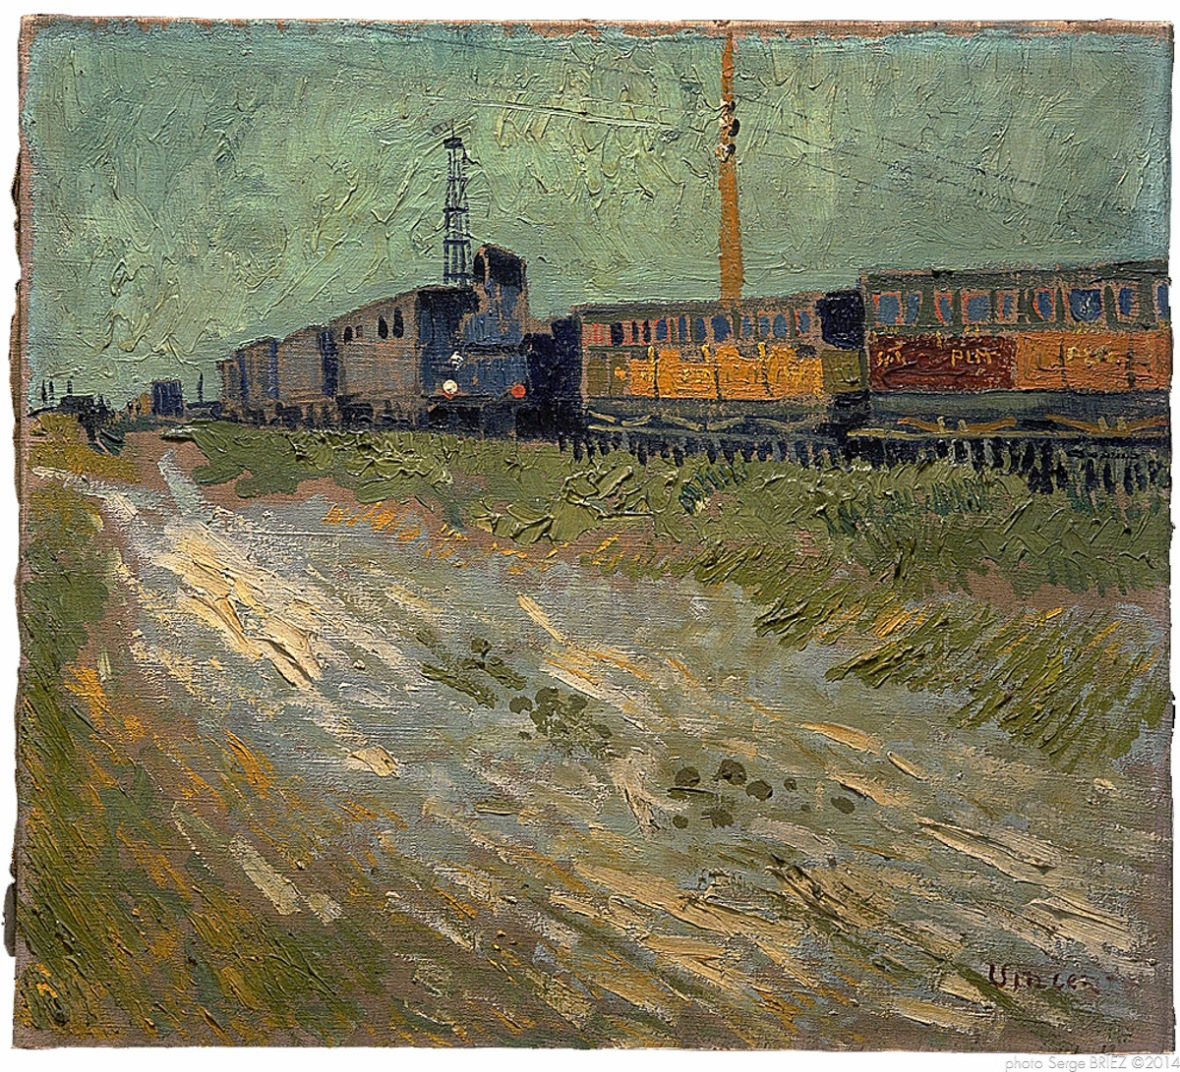 Railway wagons, Wagons de chemin de fer, août 1888, Van gogh's painting photographed by Serge Briez, ©2014 Cap médiations